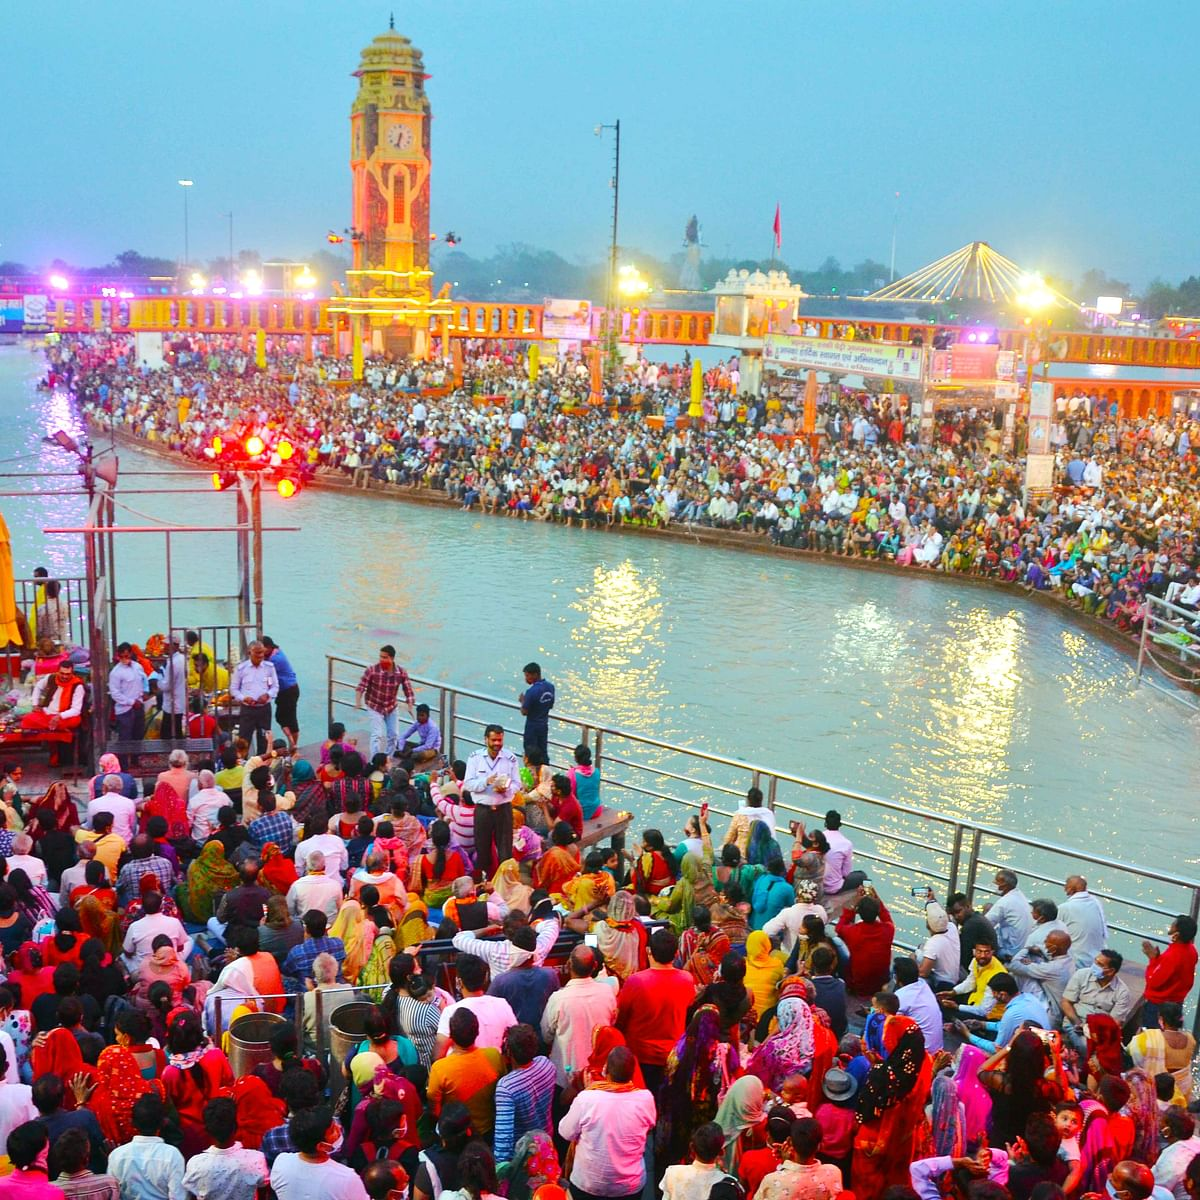 COVID-19 in Delhi: Kejriwal govt makes 14-day home quarantine mandatory for Kumbh returnees